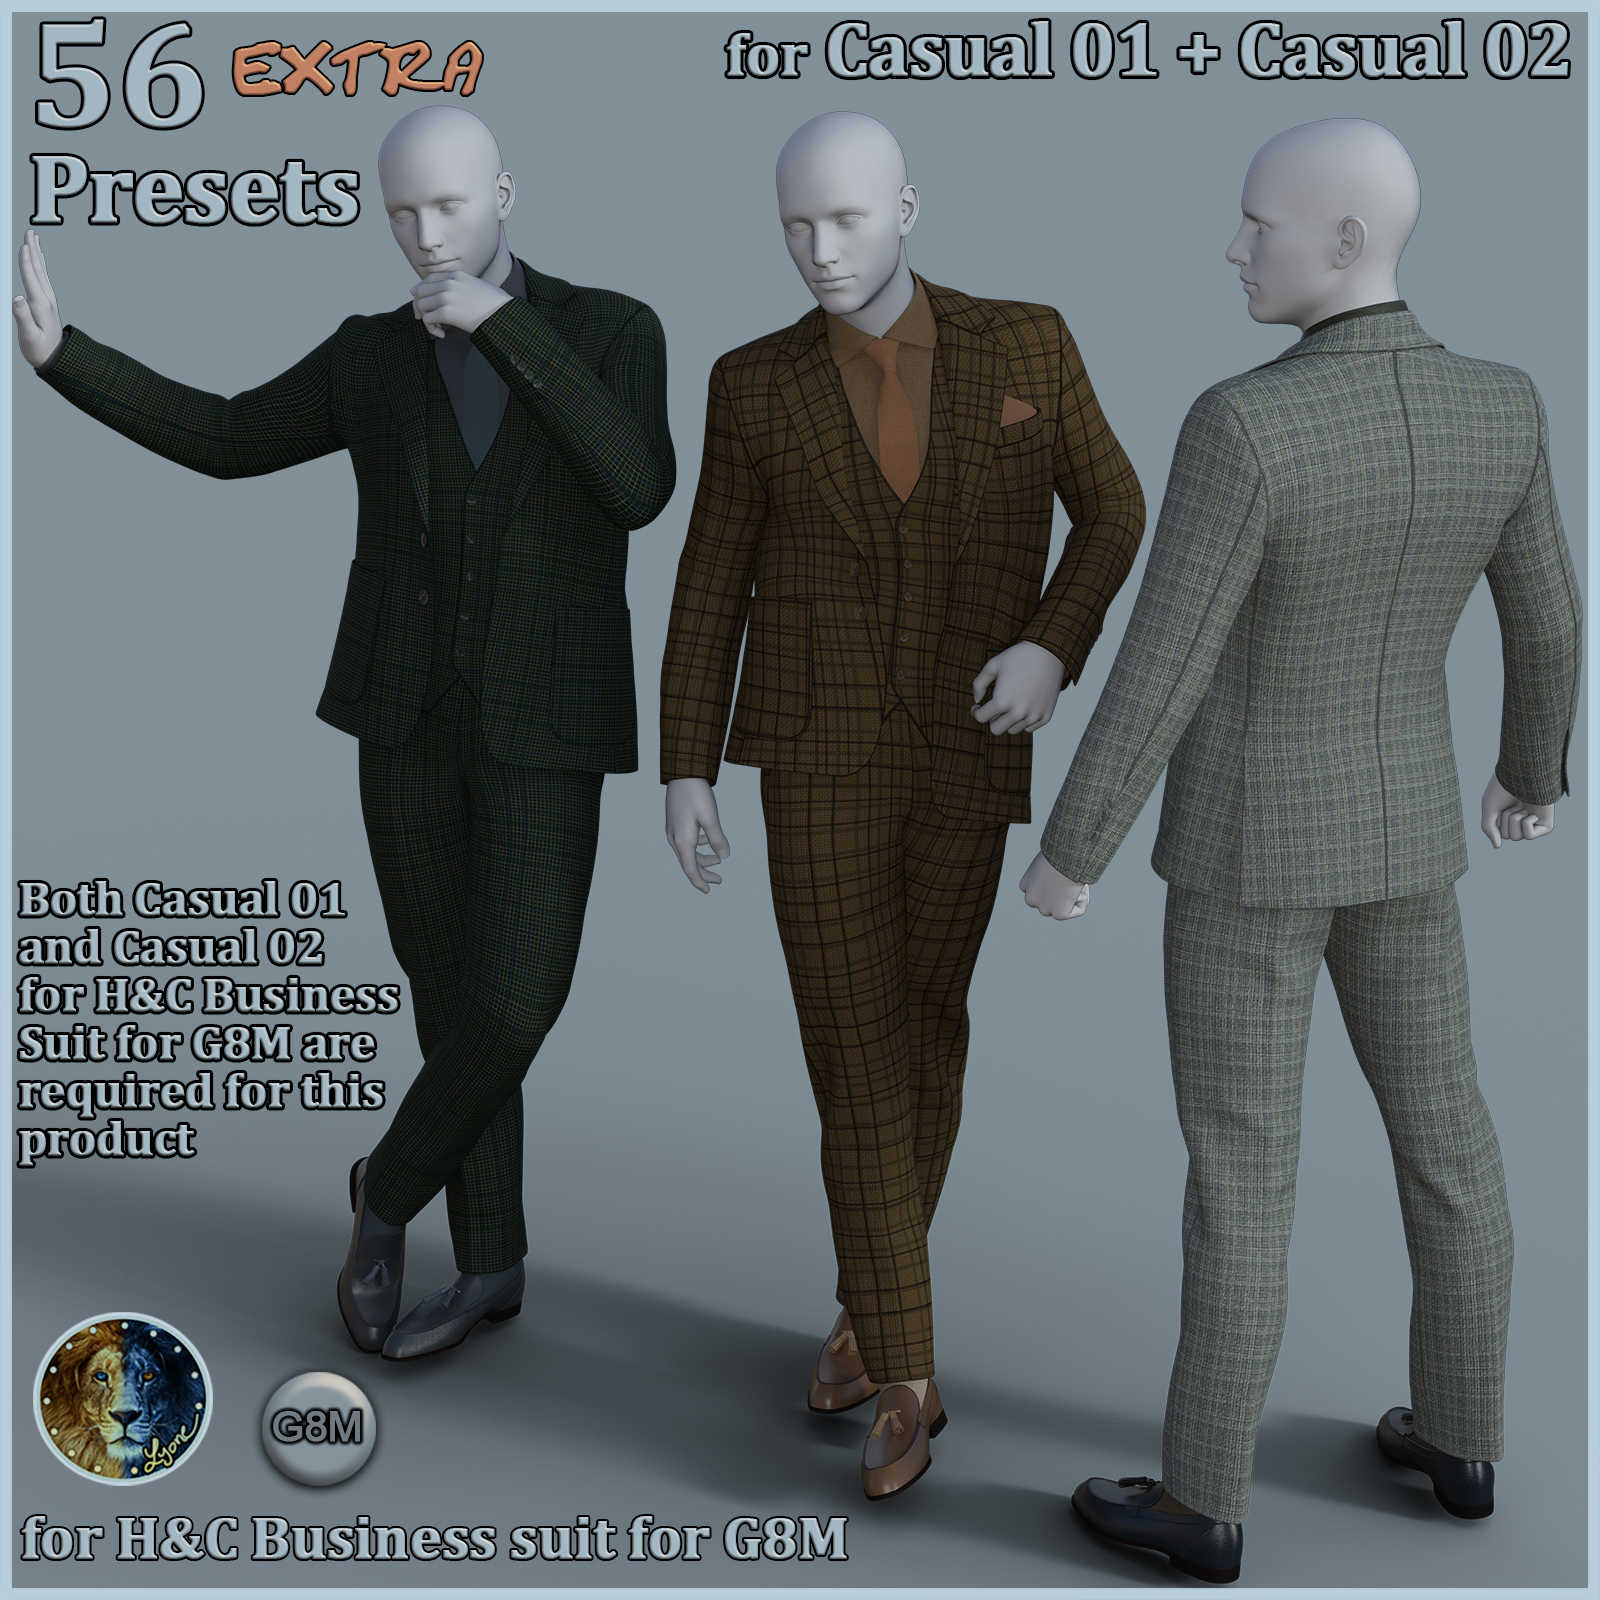 56 extra Presets for Casual 01 plus Casual 02 for H and C Business Suit for G8M